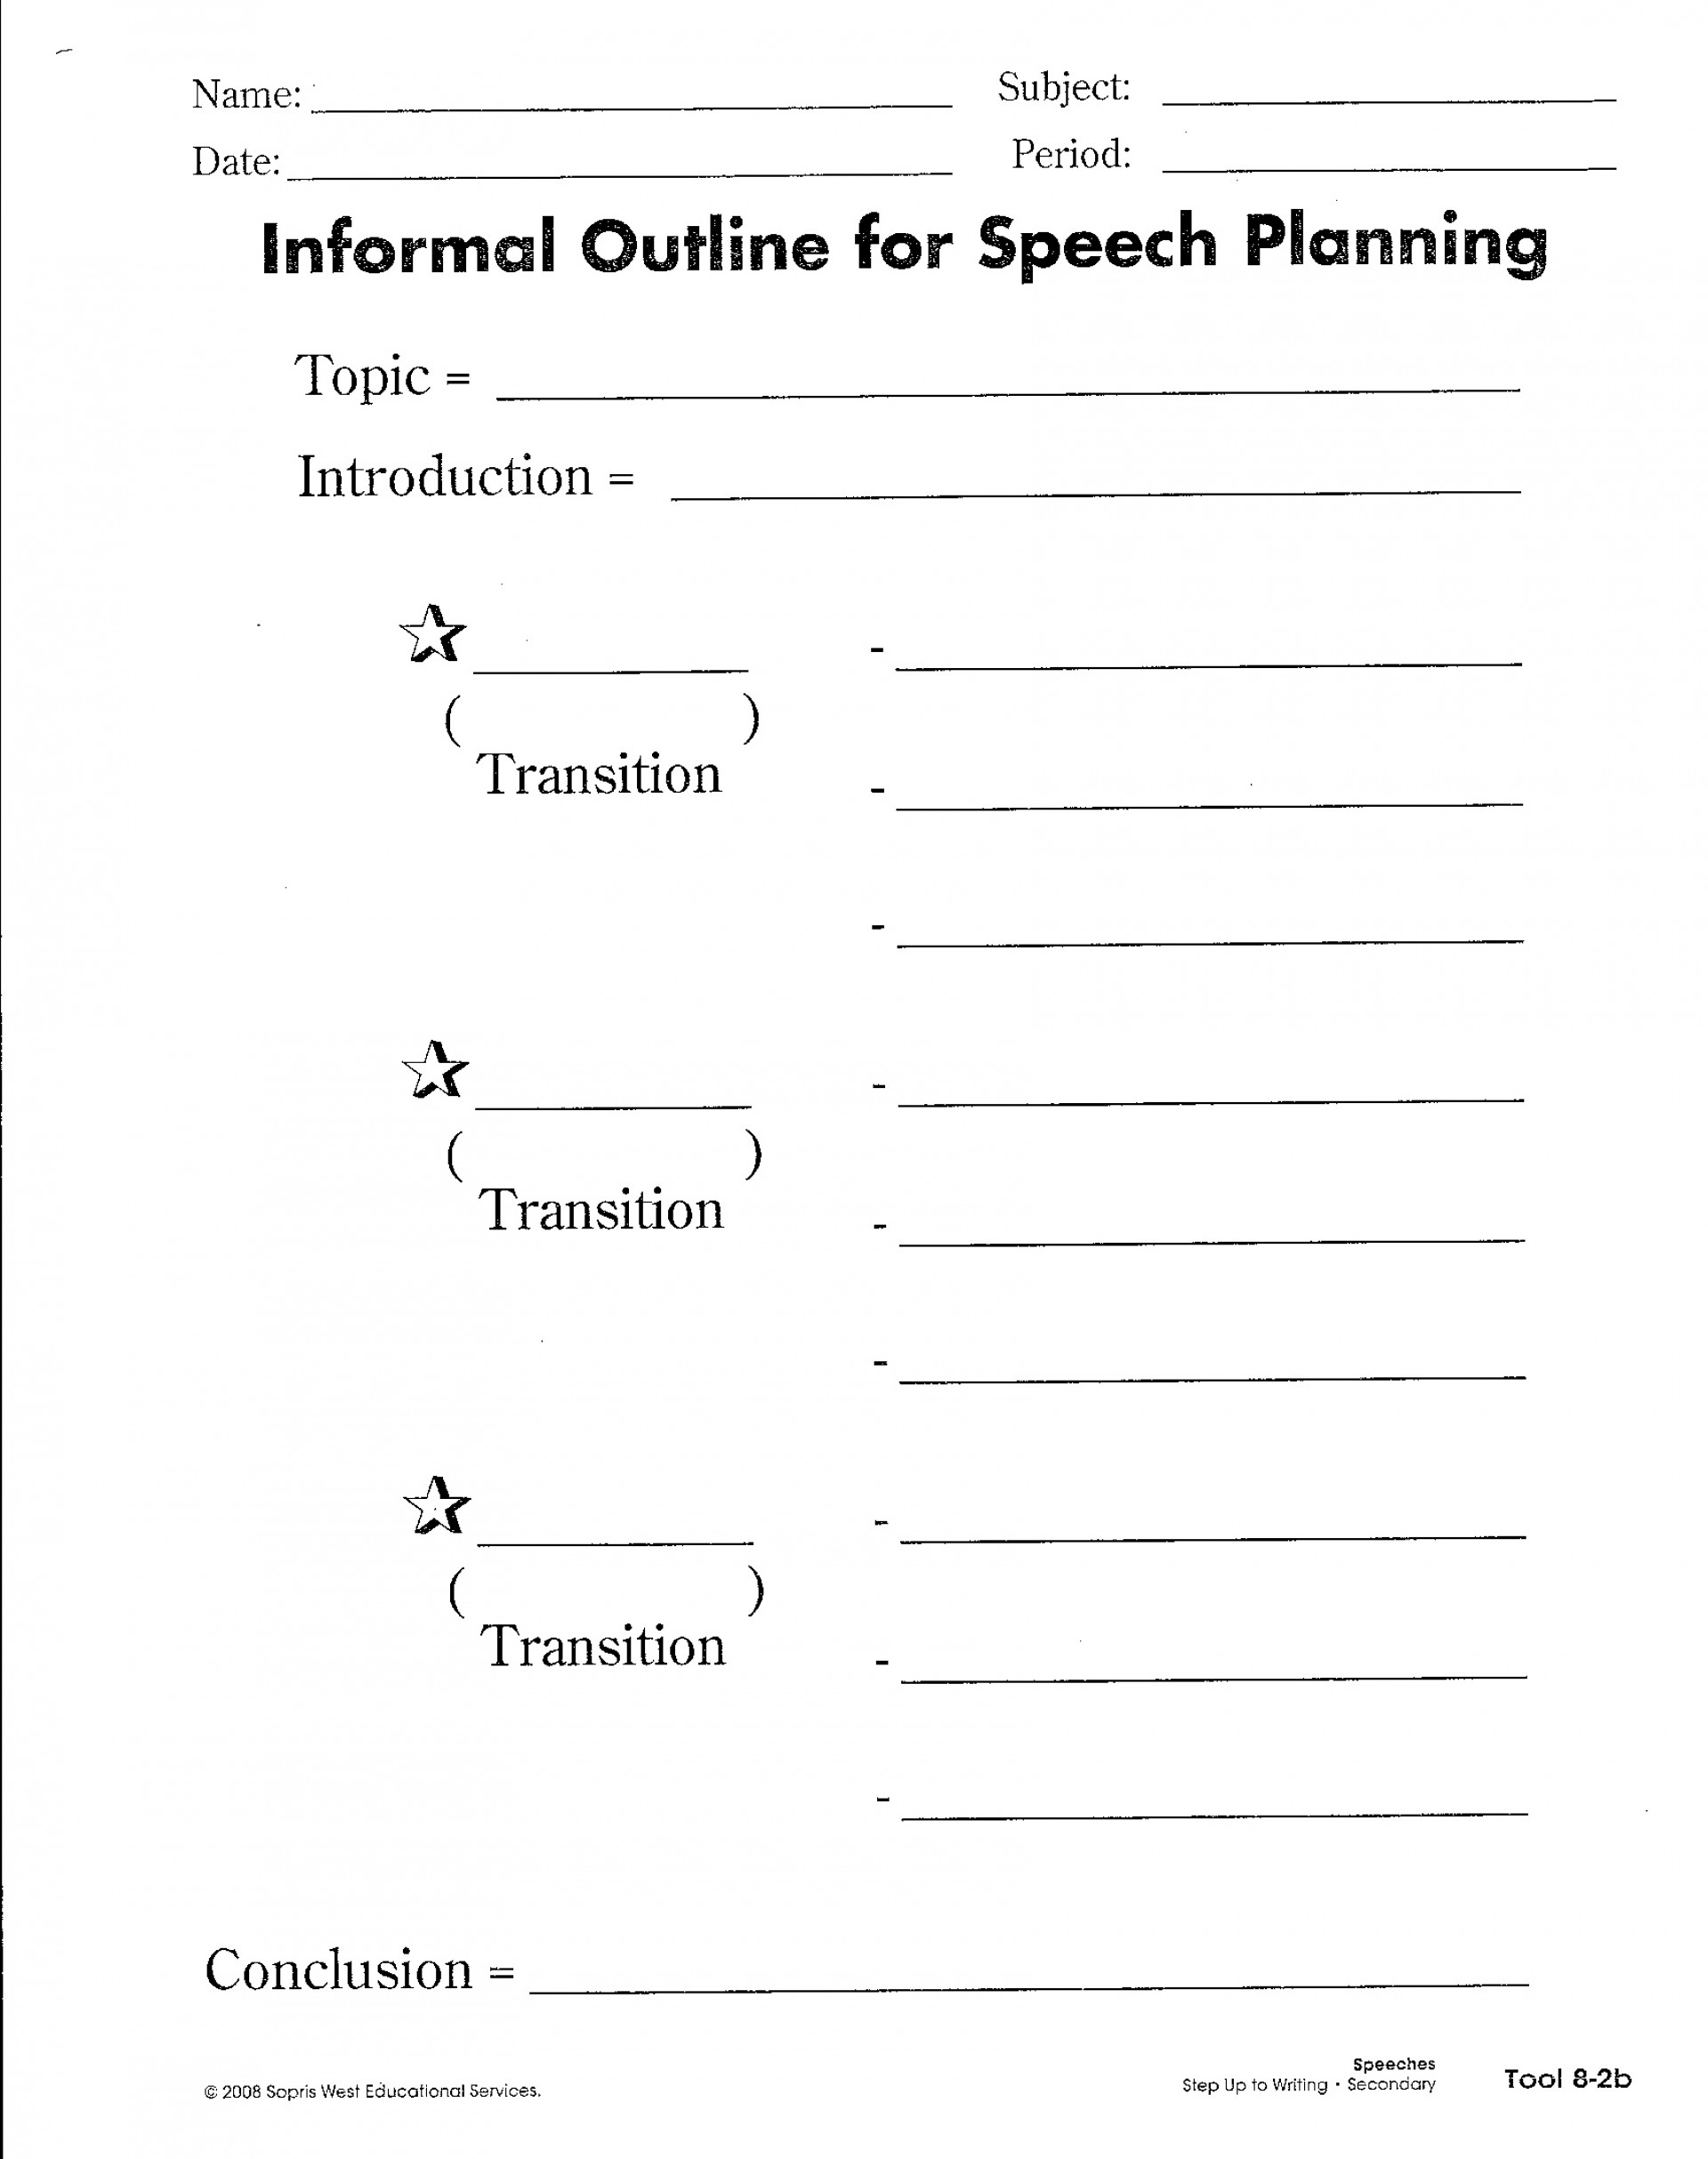 023 Making Research Paper Introduction Suw Planning Your Speech With An Informal Outline Breathtaking A 1920